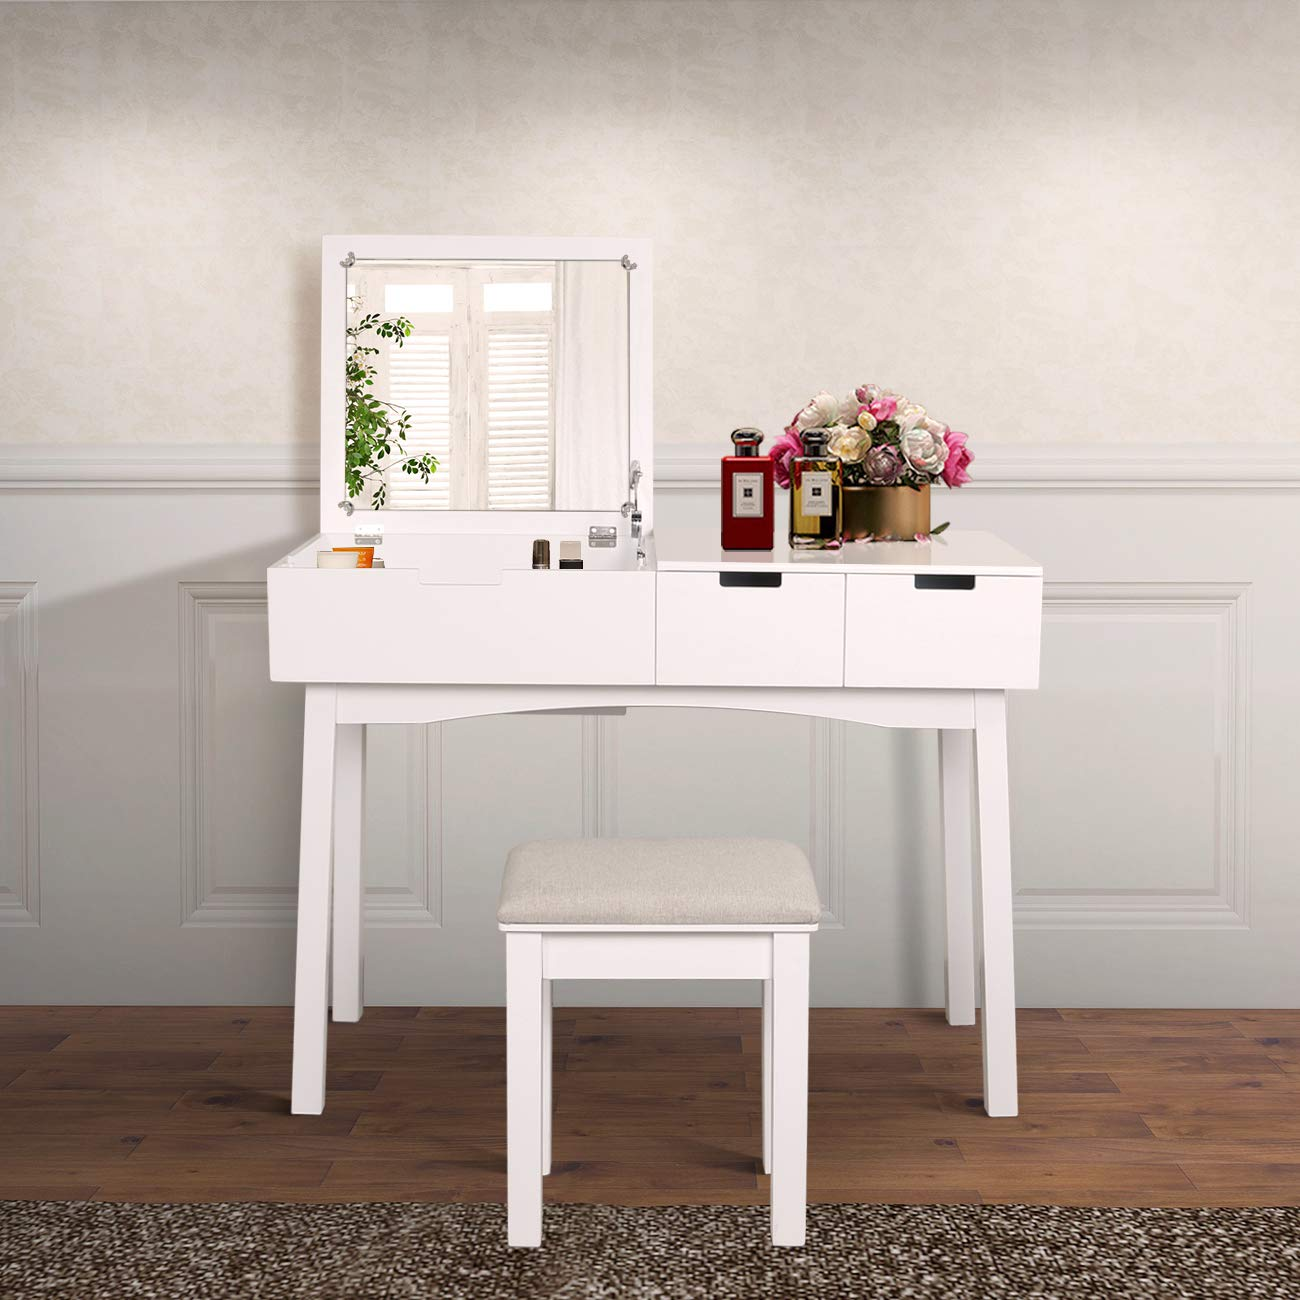 JIASTING Vanity Beauty Station, Dresing Table Vanity Set with Flip Top Mirror,1 Large Organization 2 Drawers Makeup Dresser, Writing Desk by JIASTING